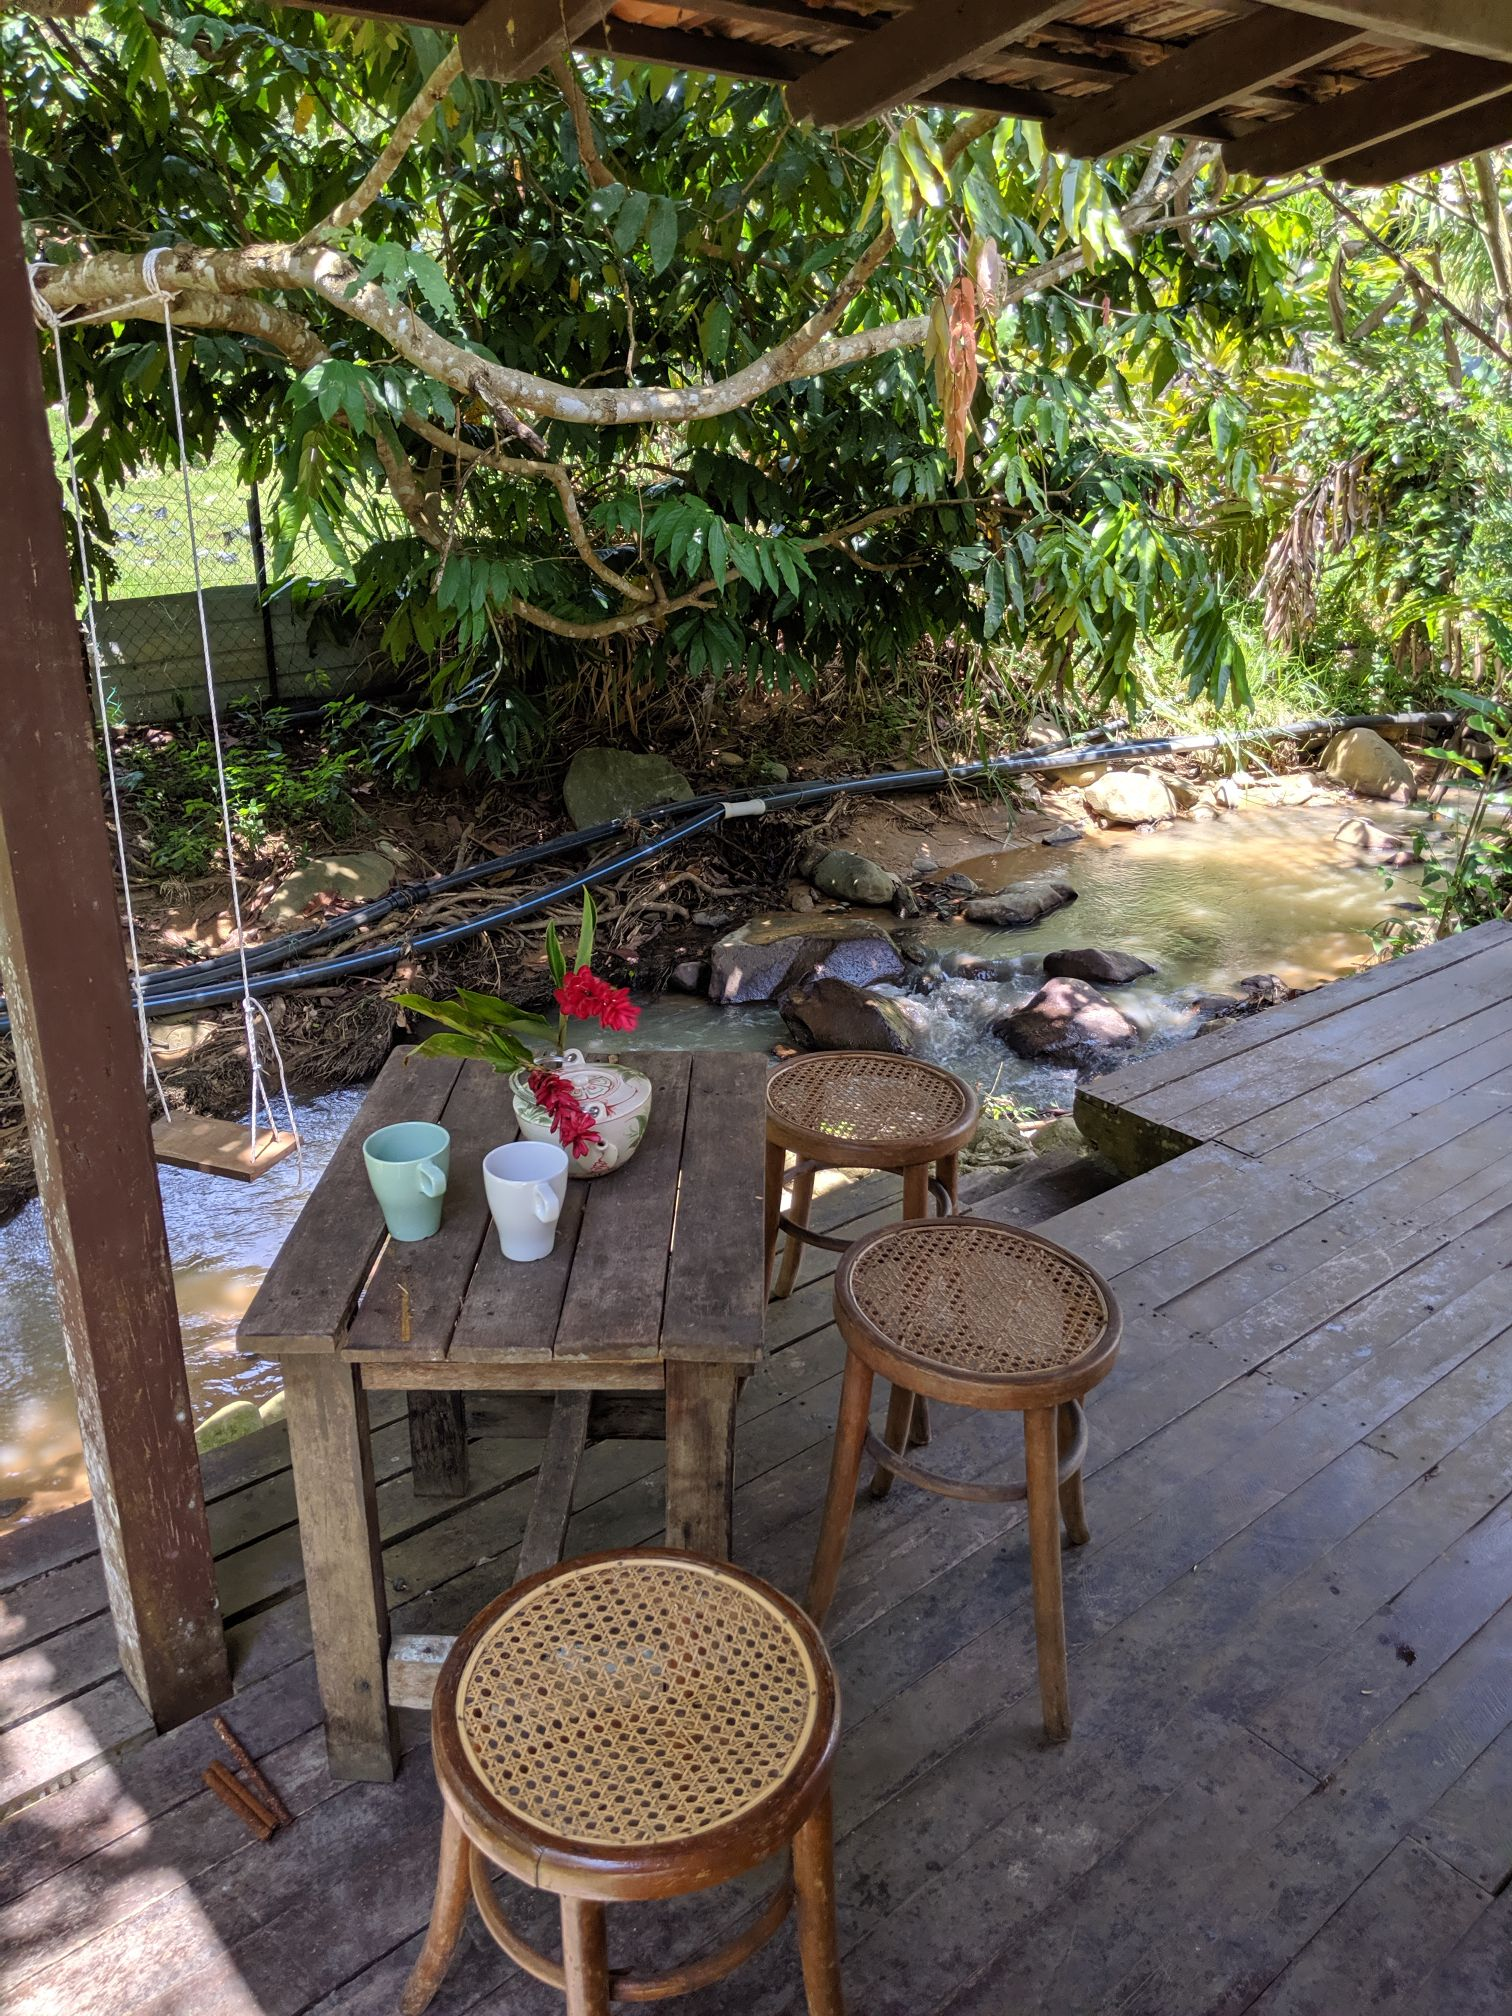 Janda Baik River Side Private Cottage Villas For Rent In Bentong Pahang Malaysia